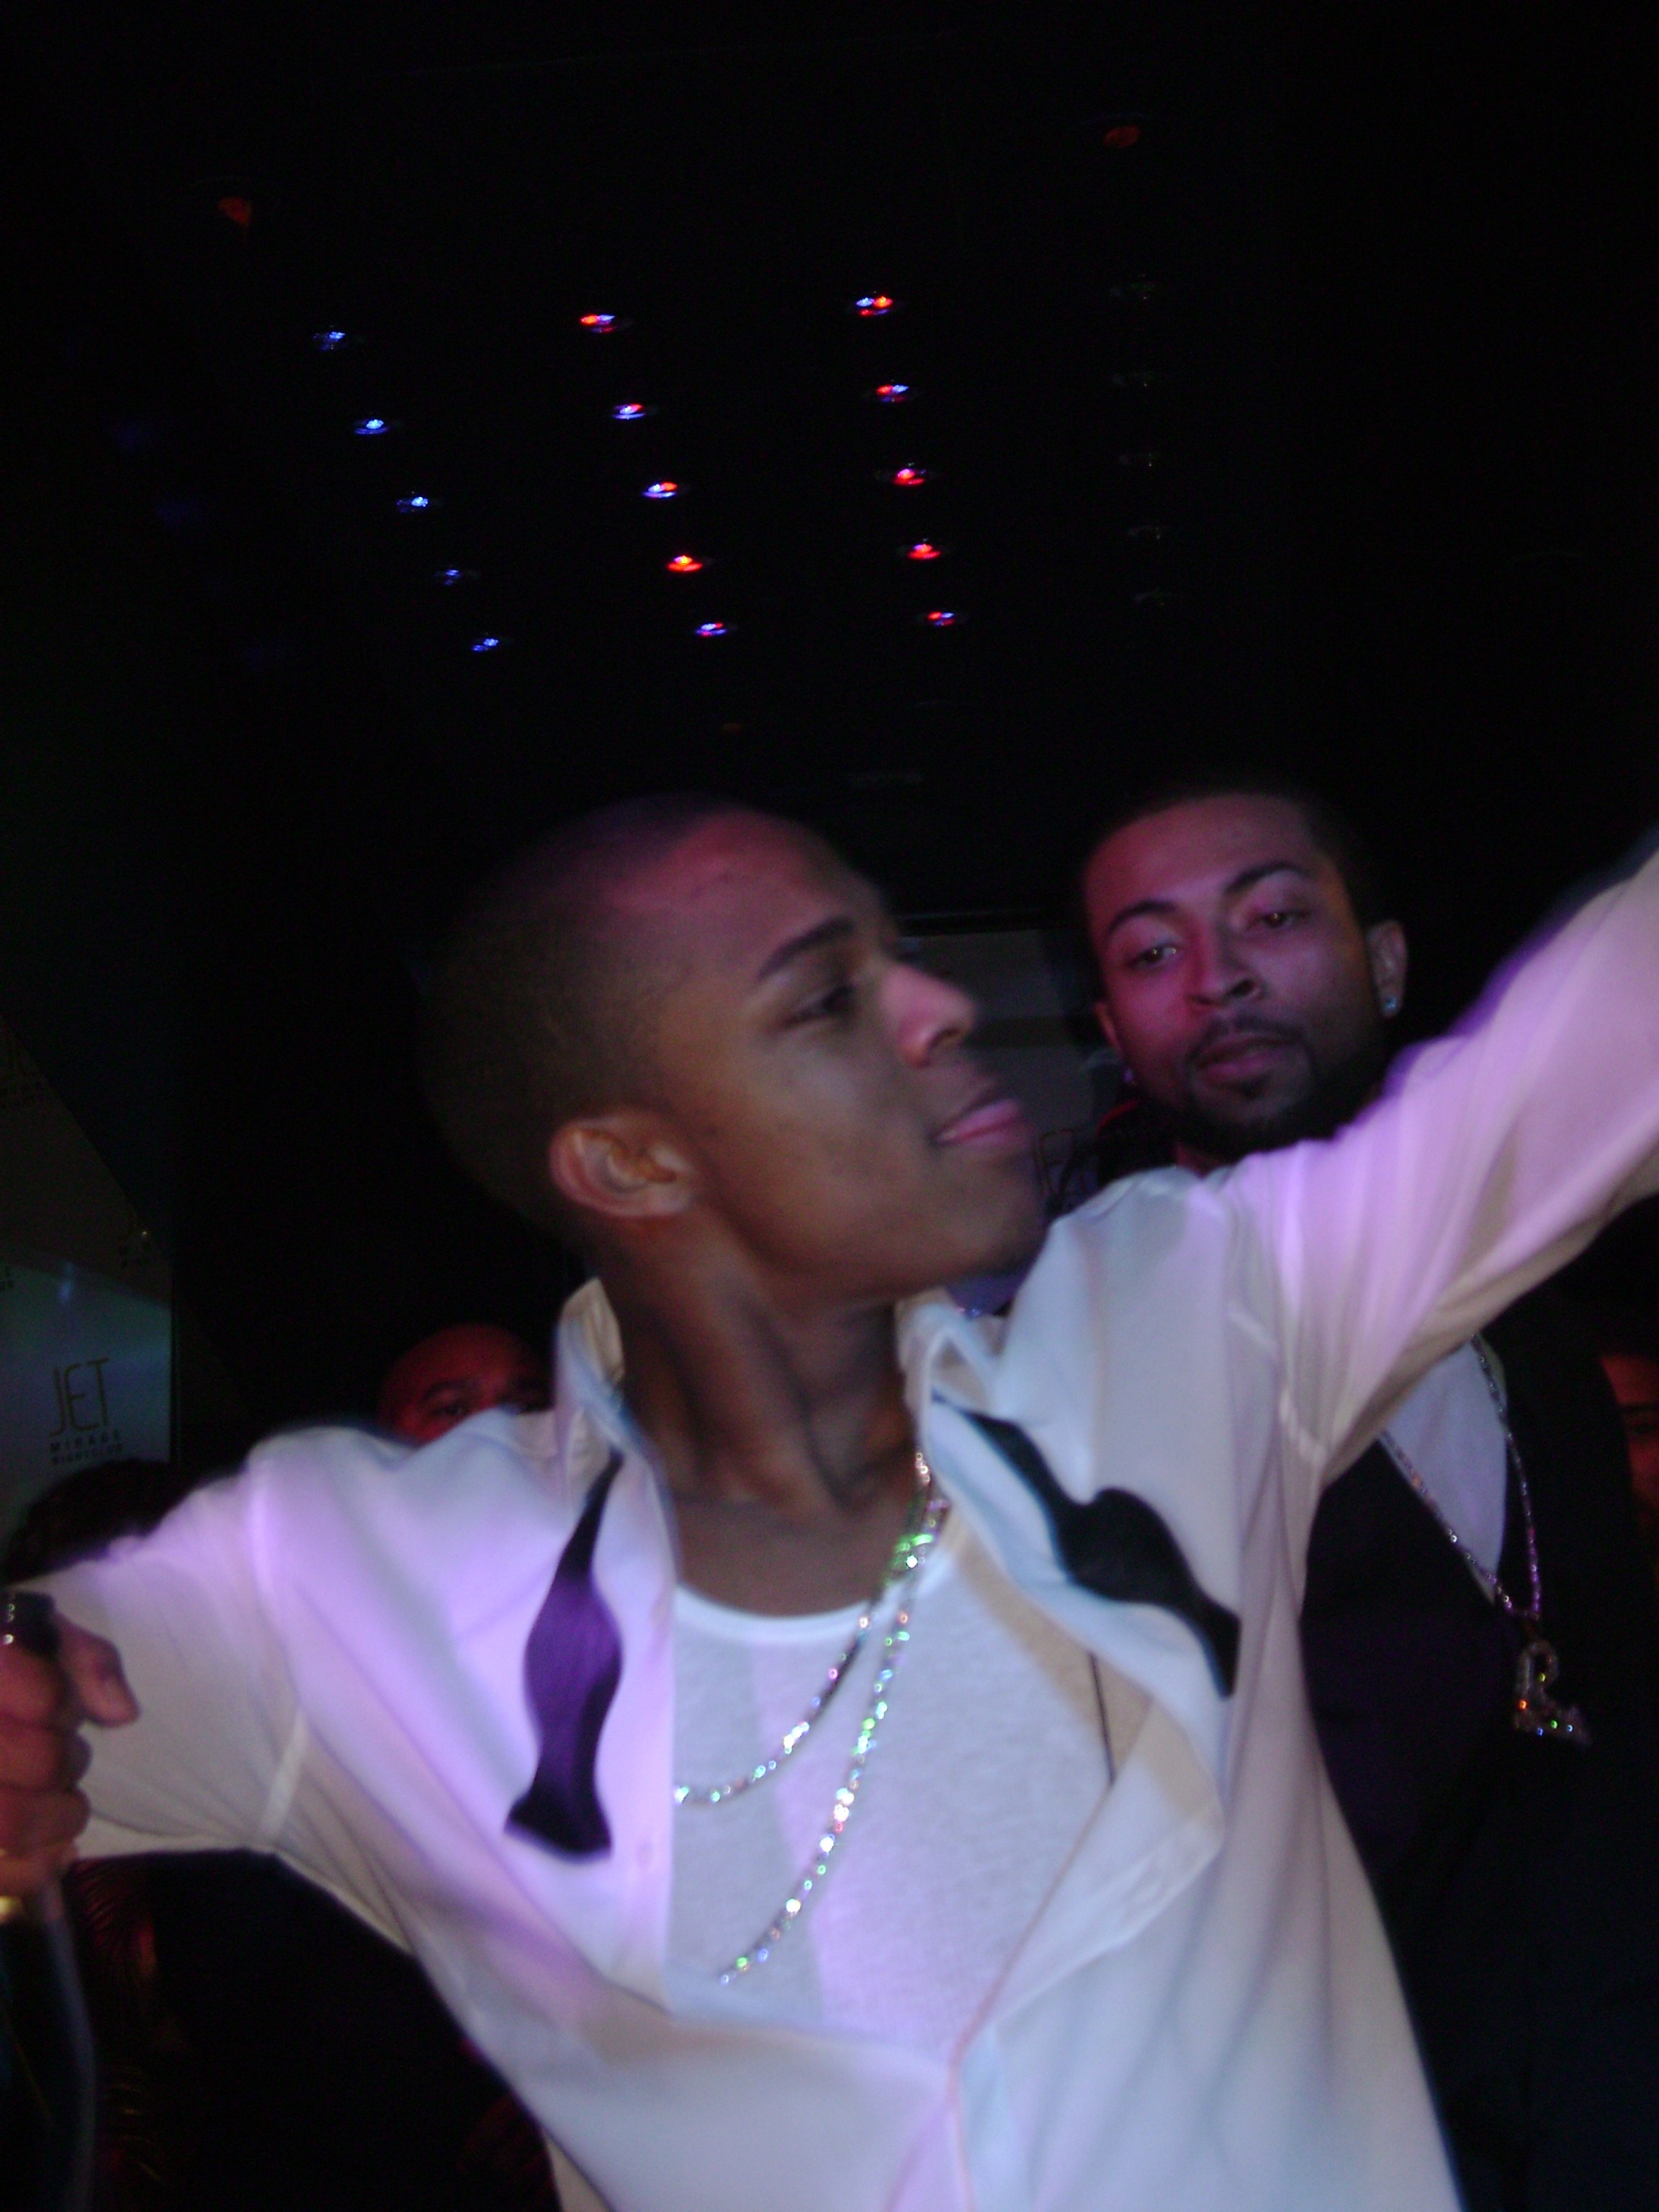 DJ Quick Djing In Las Vegas For Bow Wow's 21st B.D. Pic 1